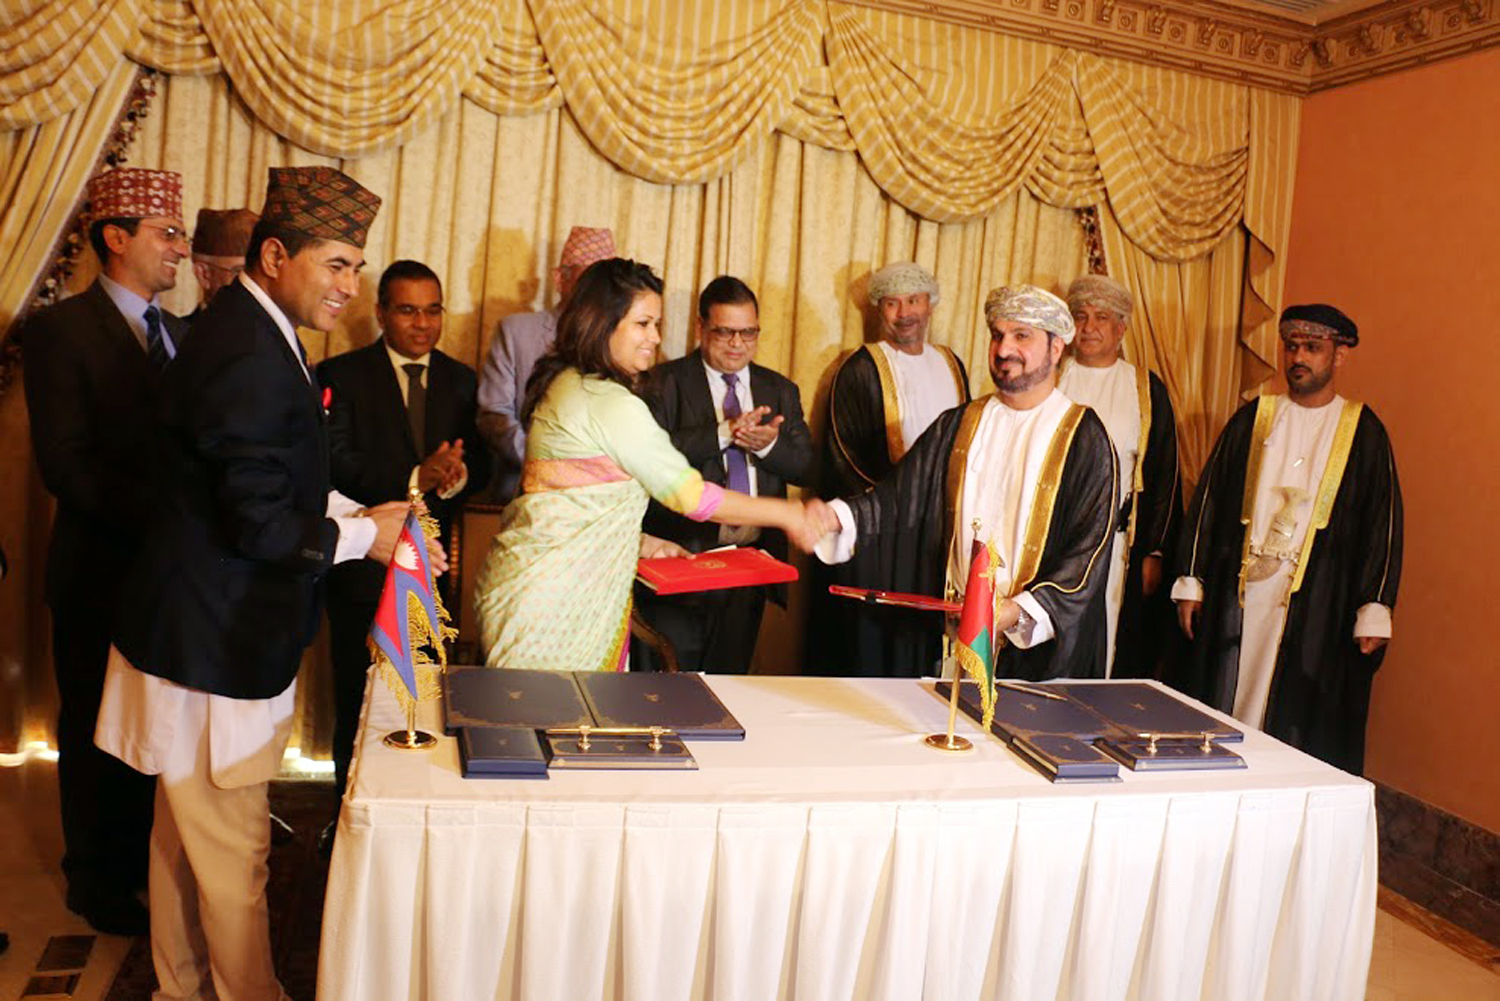 Ambassador of Nepal to Oman Sharmila Parajuli Dhakal (left) and Head of West Asia Department at the Ministry of Foreign Affairs of Oman, Shiekh Hilah Marhoon Al-Mammari exchange the MoU on behalf of the respective governments, in Oman, on Wednesday, September 27, 2017. Photo: RSS